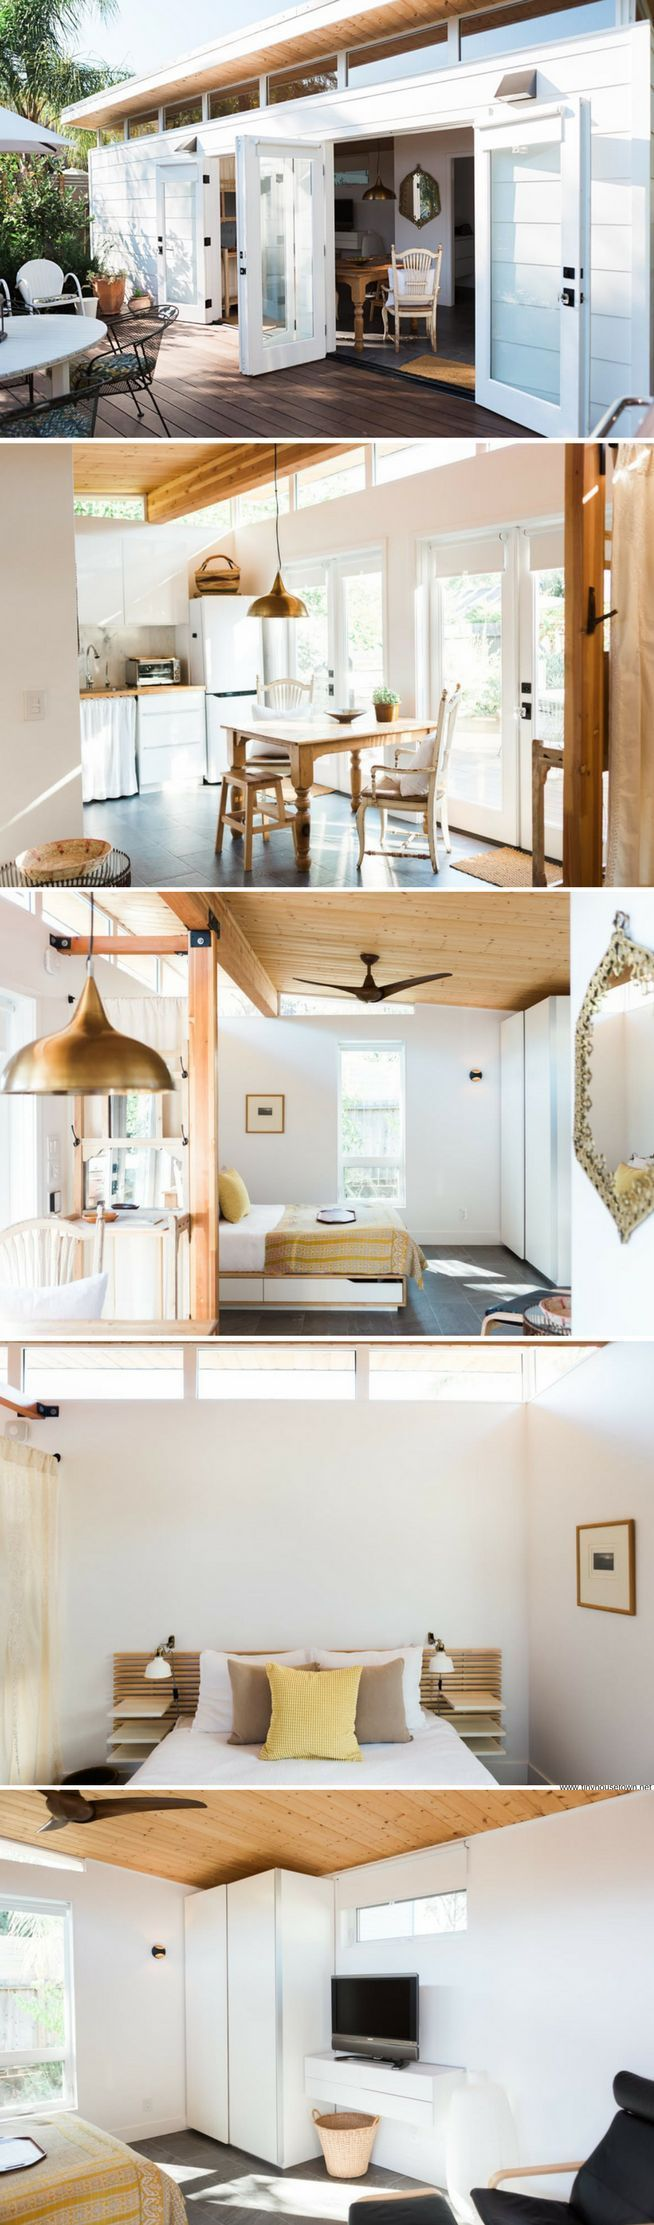 a 364 sq ft california guesthouse with a bright modern interior - Small House Interior Design